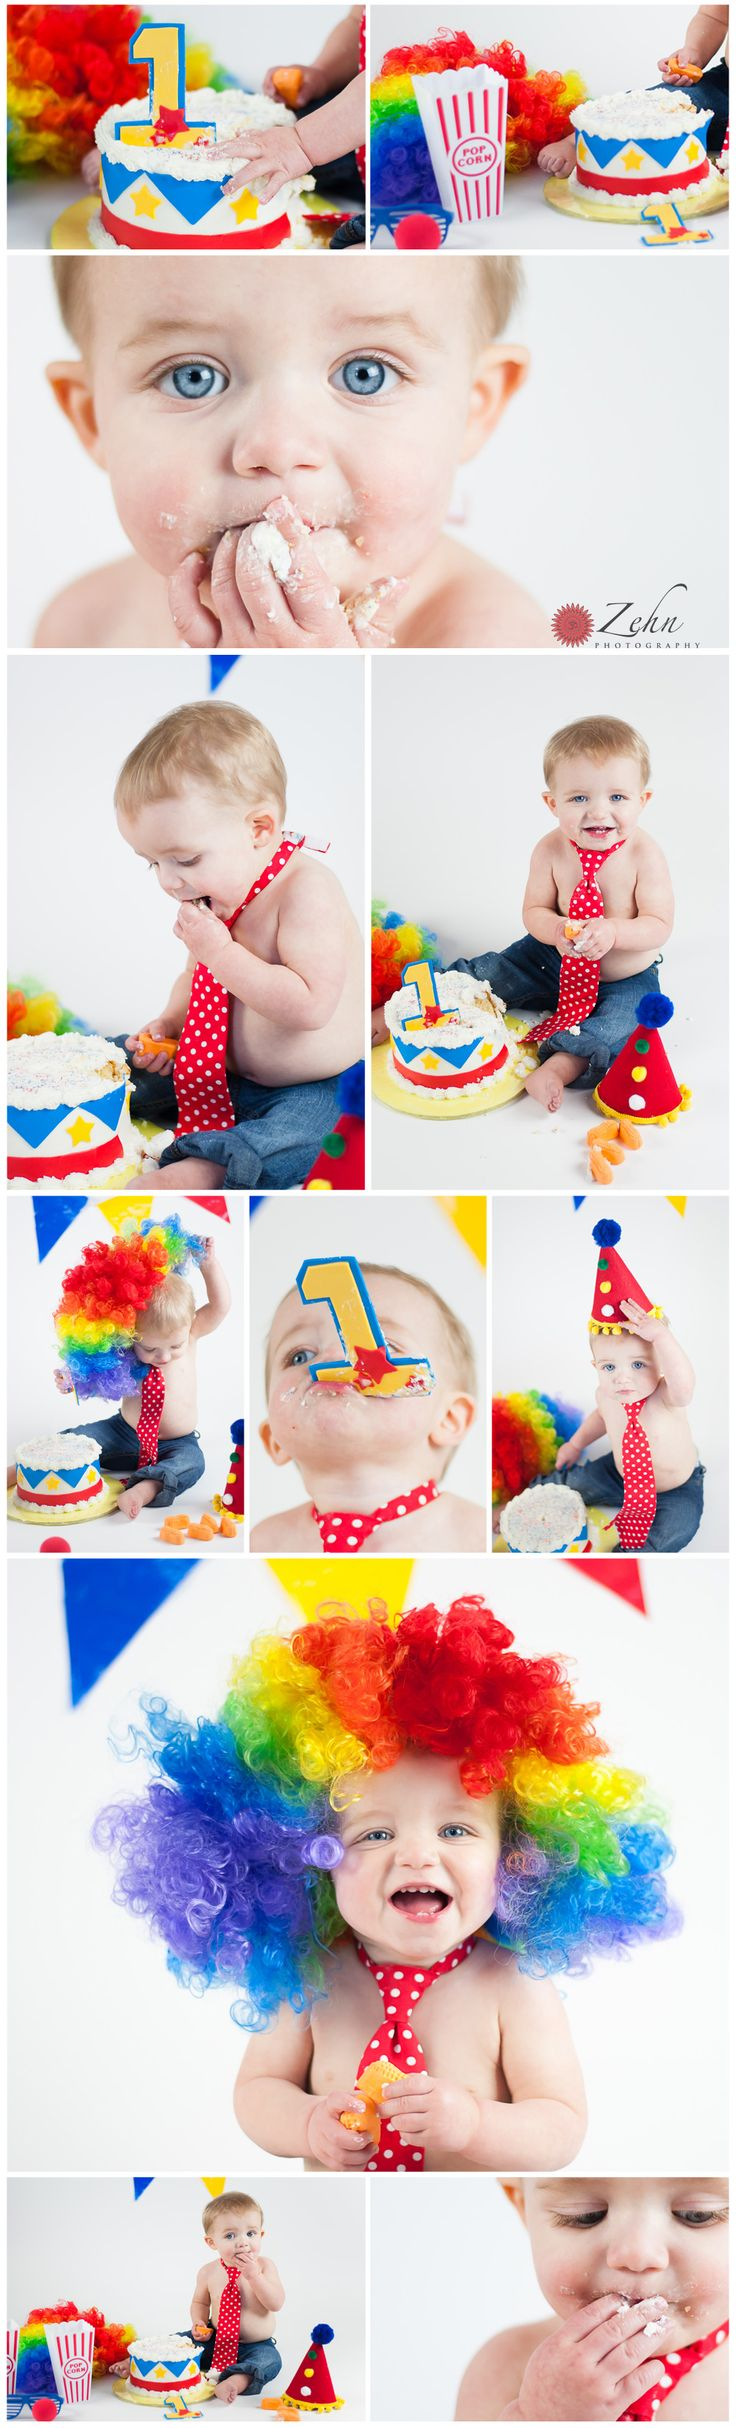 Adorable Circus themed cake smash session! www.zehnphotography.com Cake Smash idea, clown, circus theme, colorful photo session